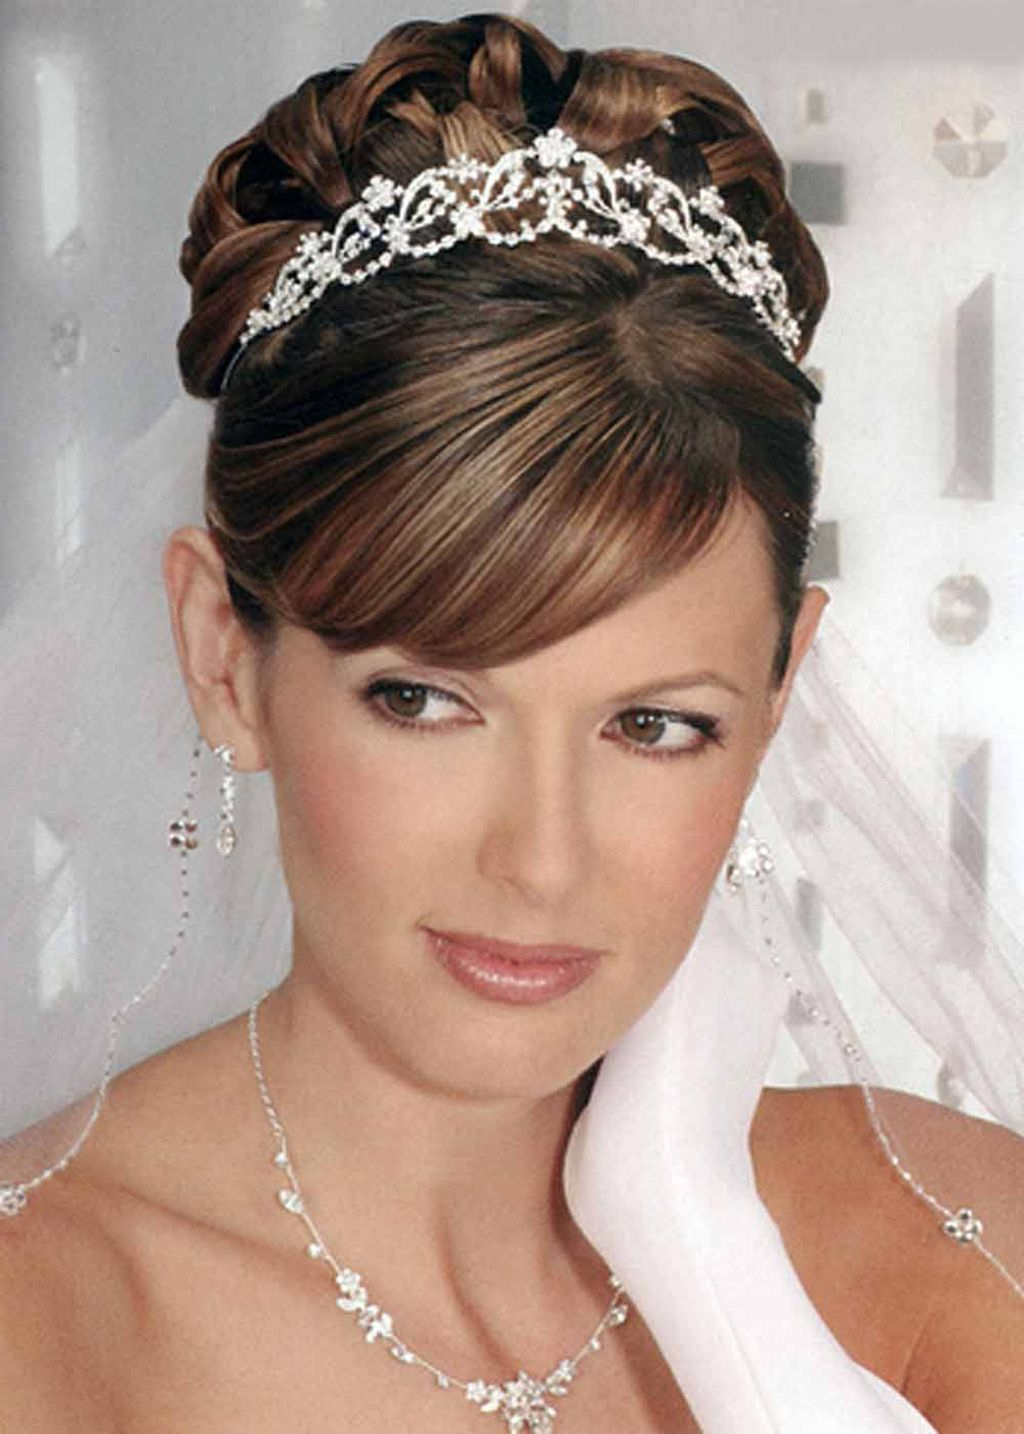 25 Most Favorite Wedding Hairstyles For Short Hair – The Xerxes Pertaining To Brides Hairstyles For Short Hair (View 16 of 25)